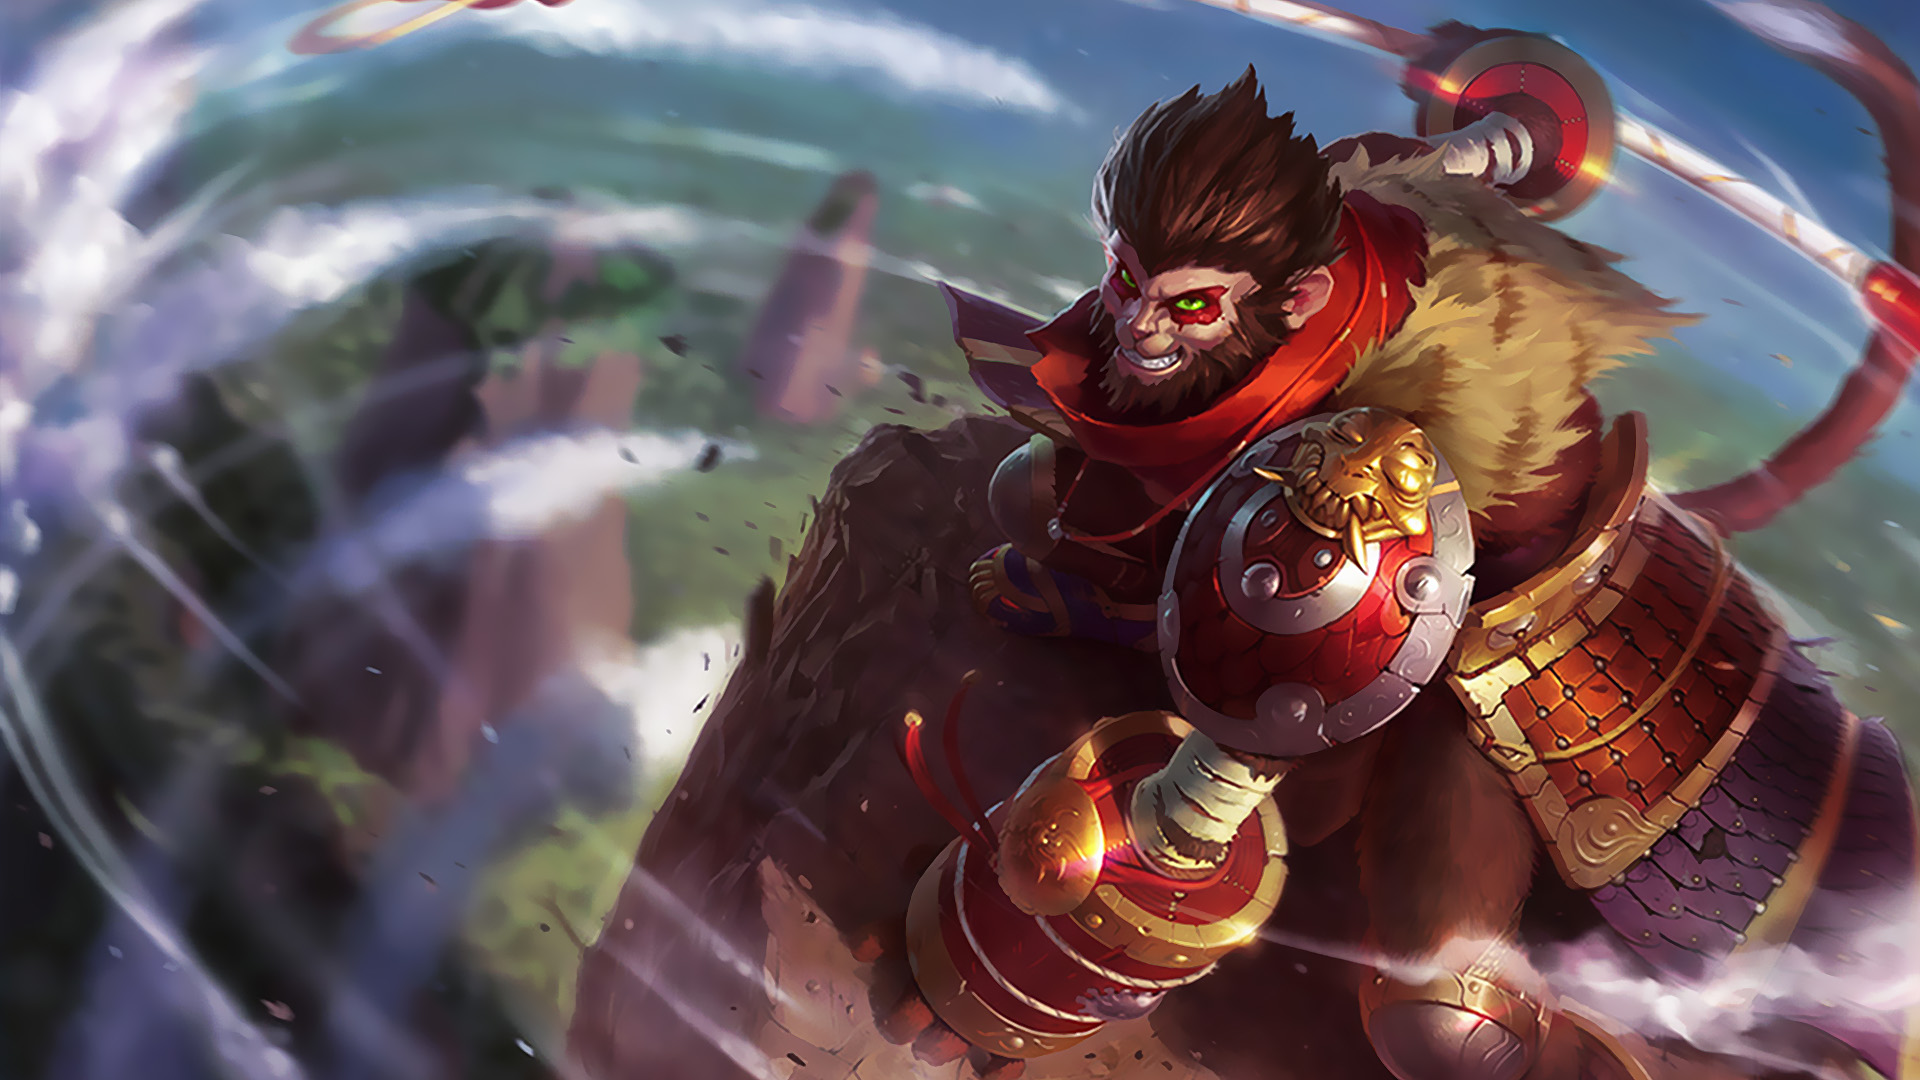 wukong classic skin league of legends wallpapers